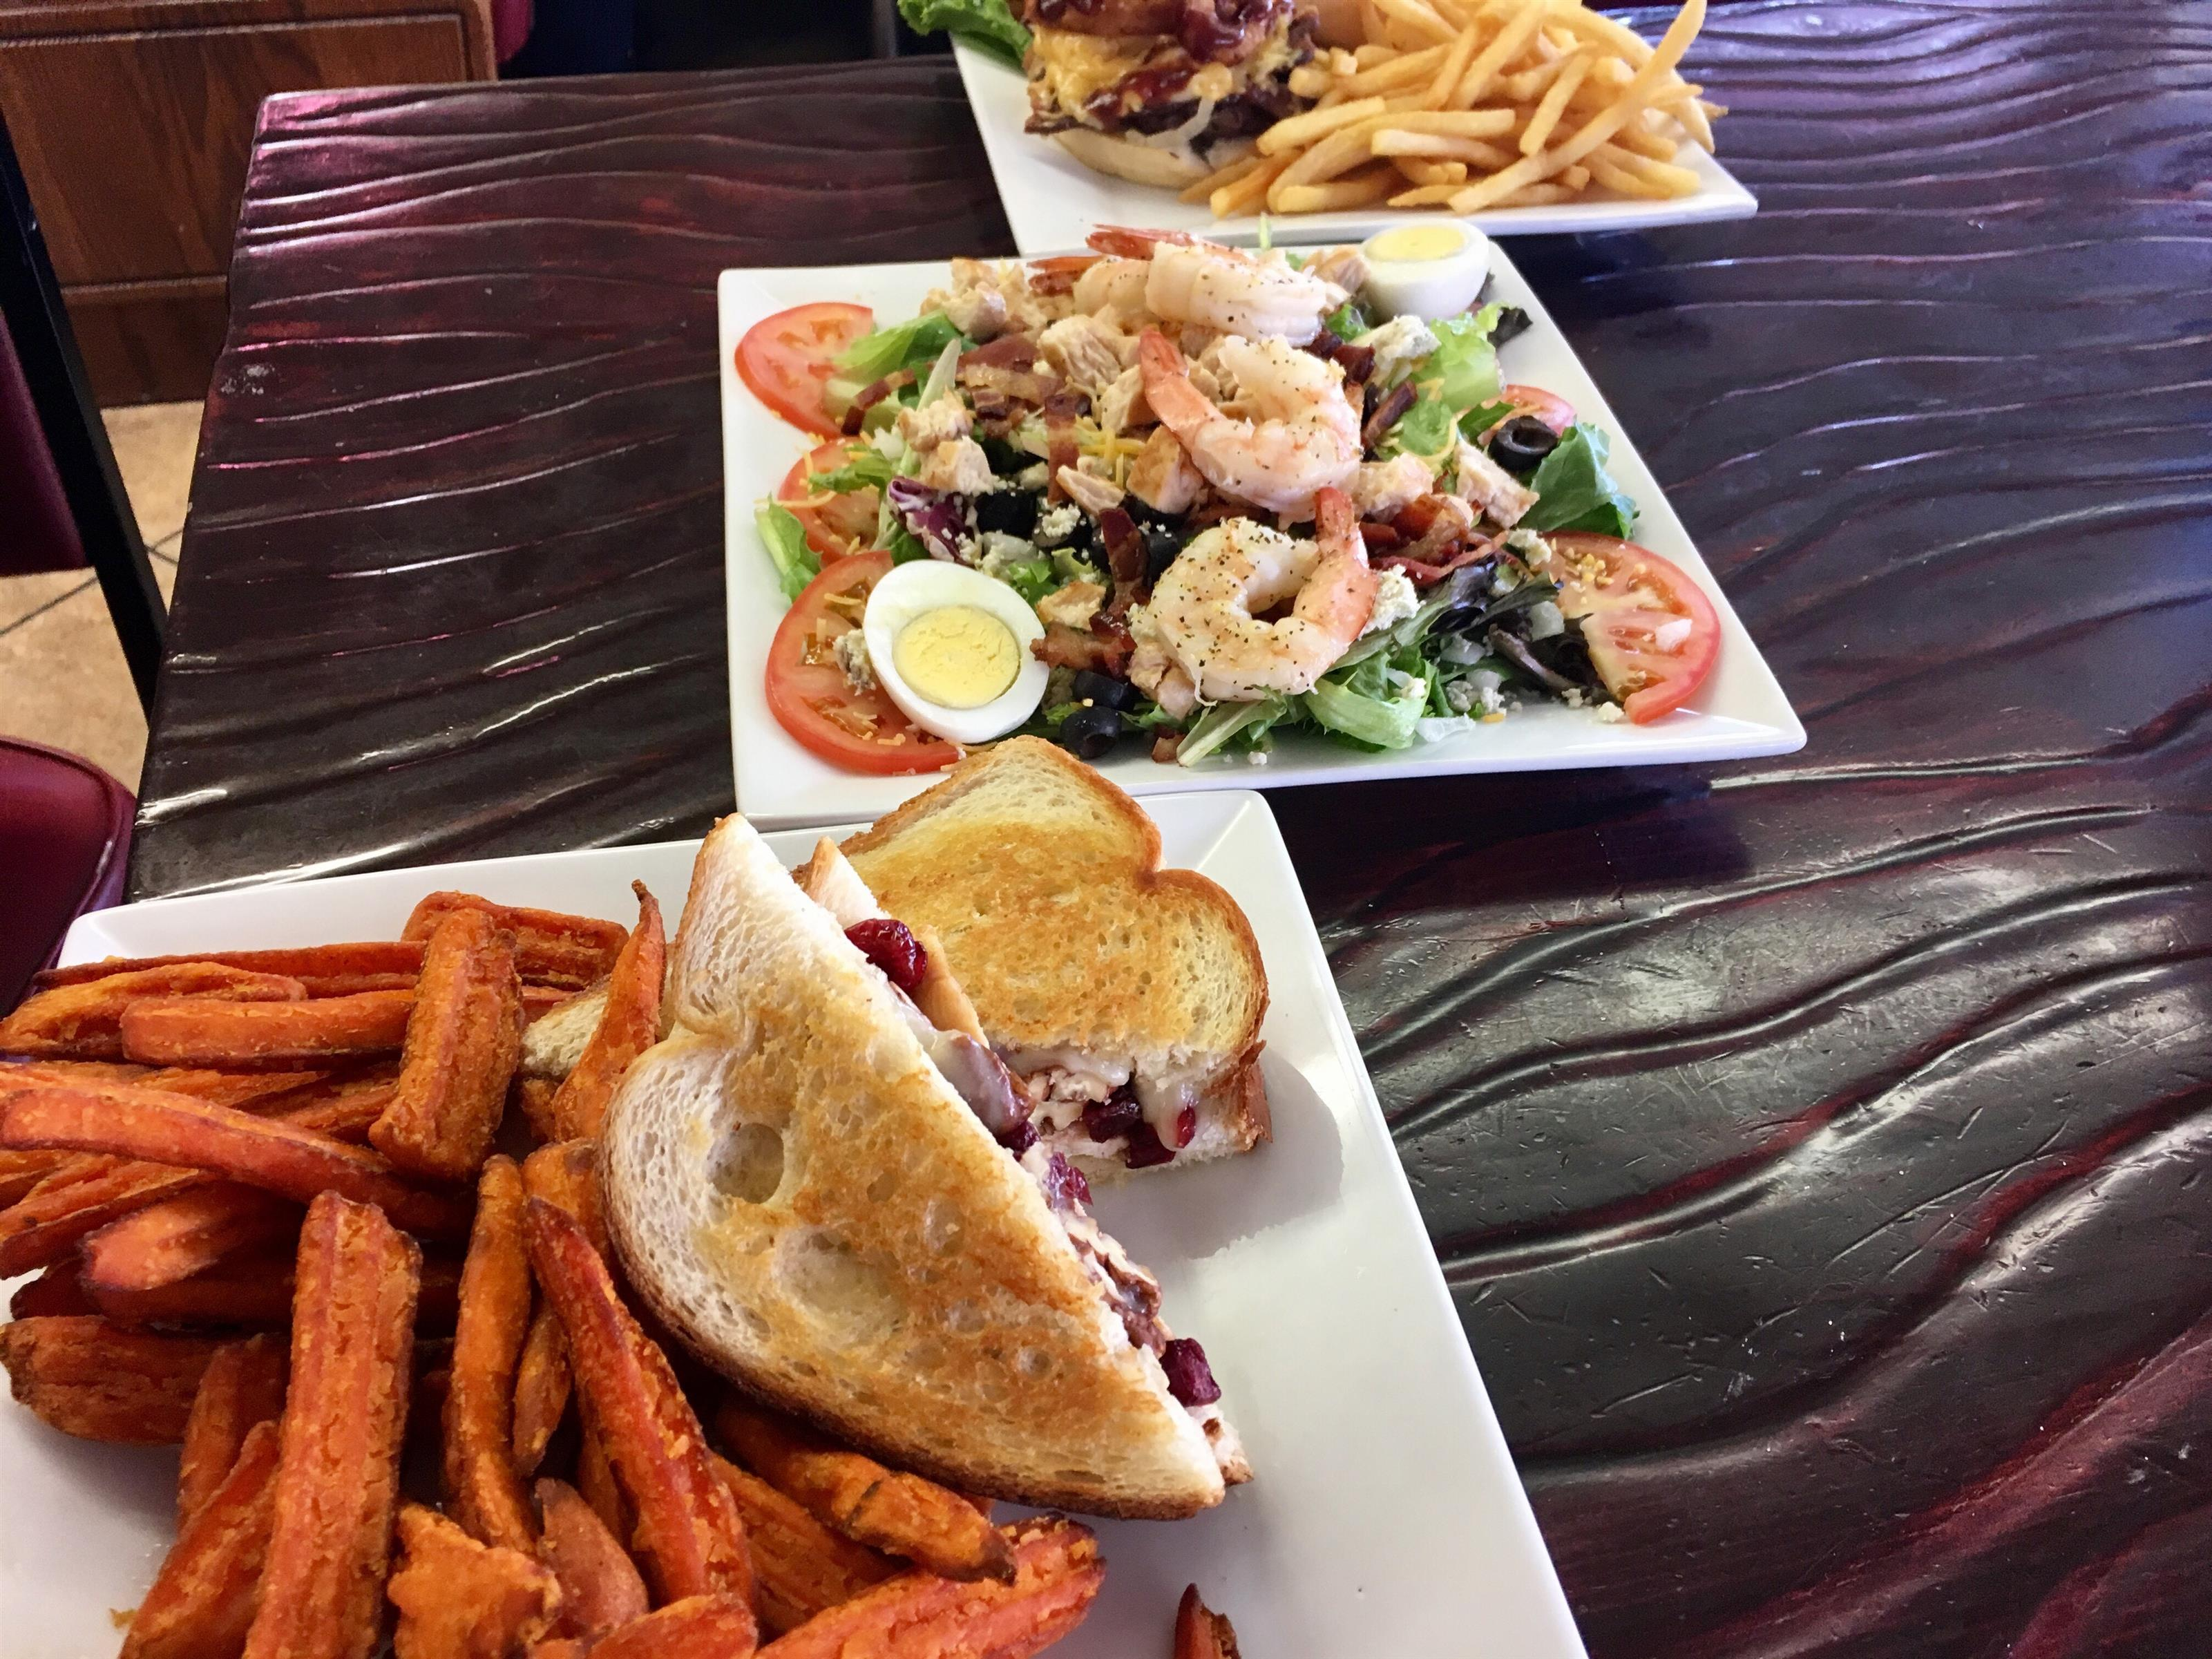 3 plates of food including a sandwich with sweet potato fries on 1 plate, a salad with shrimp, hard boiled eggs & tomatoes on top of lettuce on the 2nd place, and french fries with a sandwich on the 3rd plate